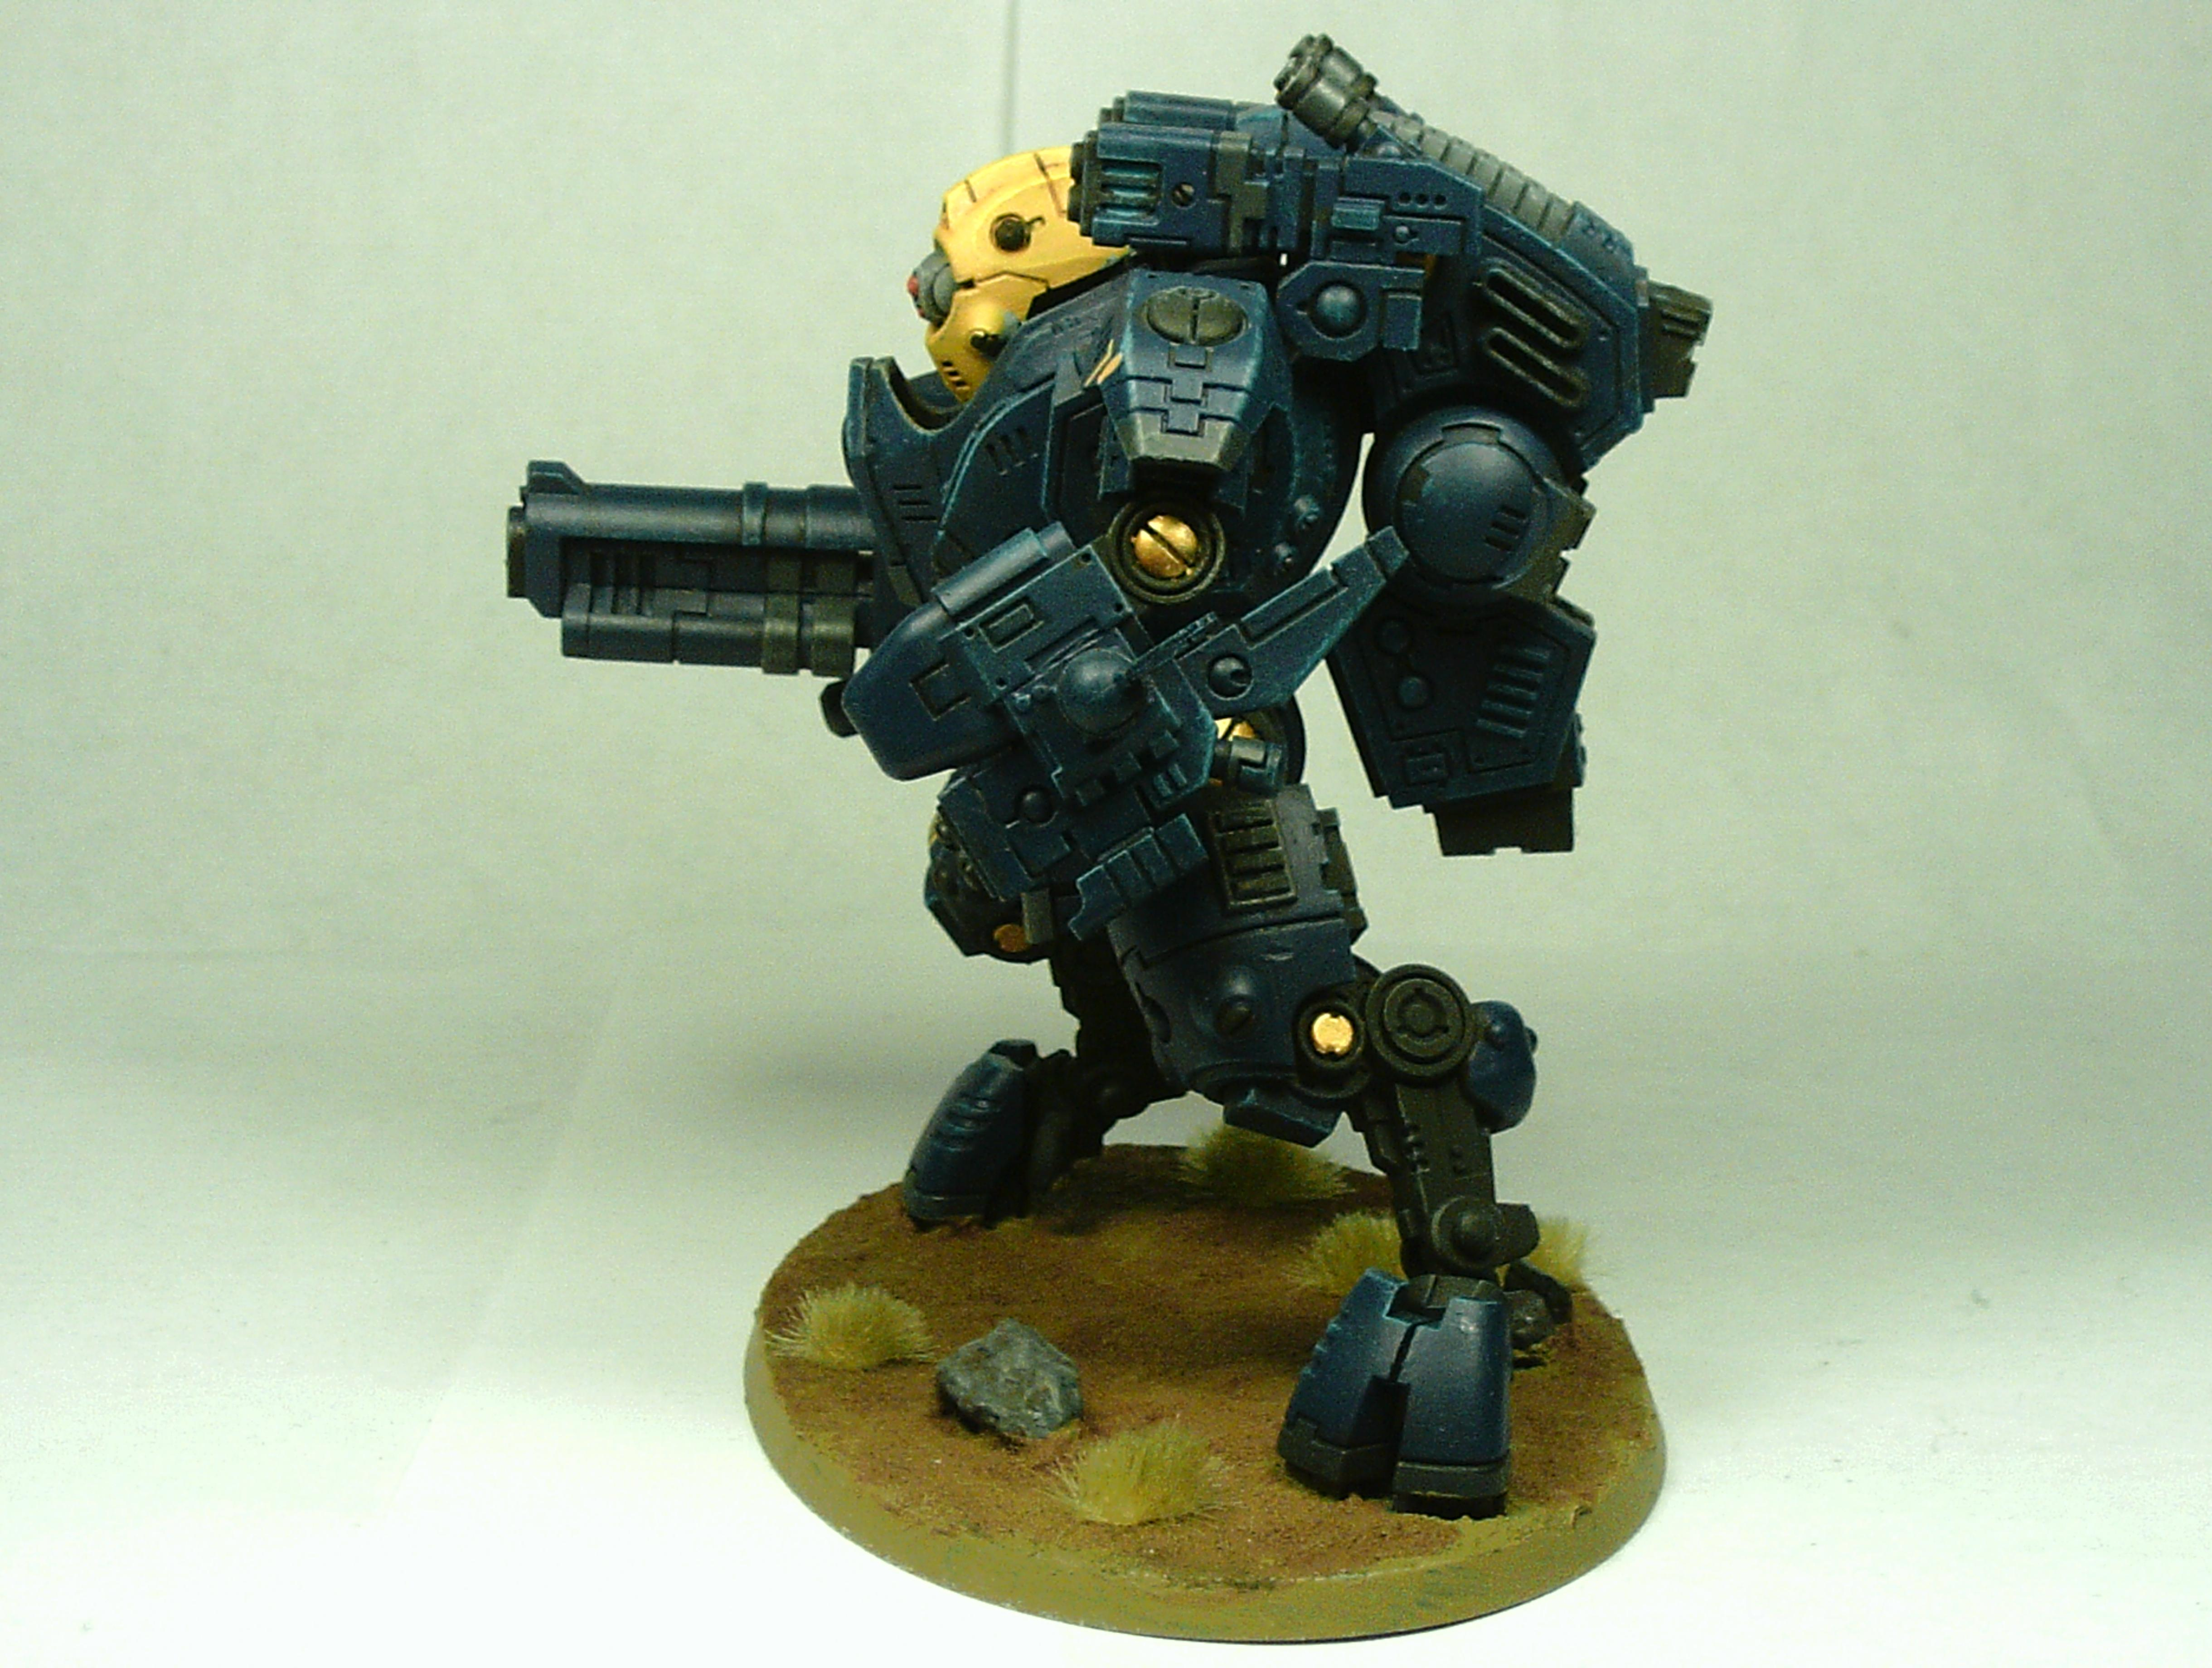 Battlesuit, Drone, Empire, Ghostkeel, Mecha, Robot, Stealth, Tau